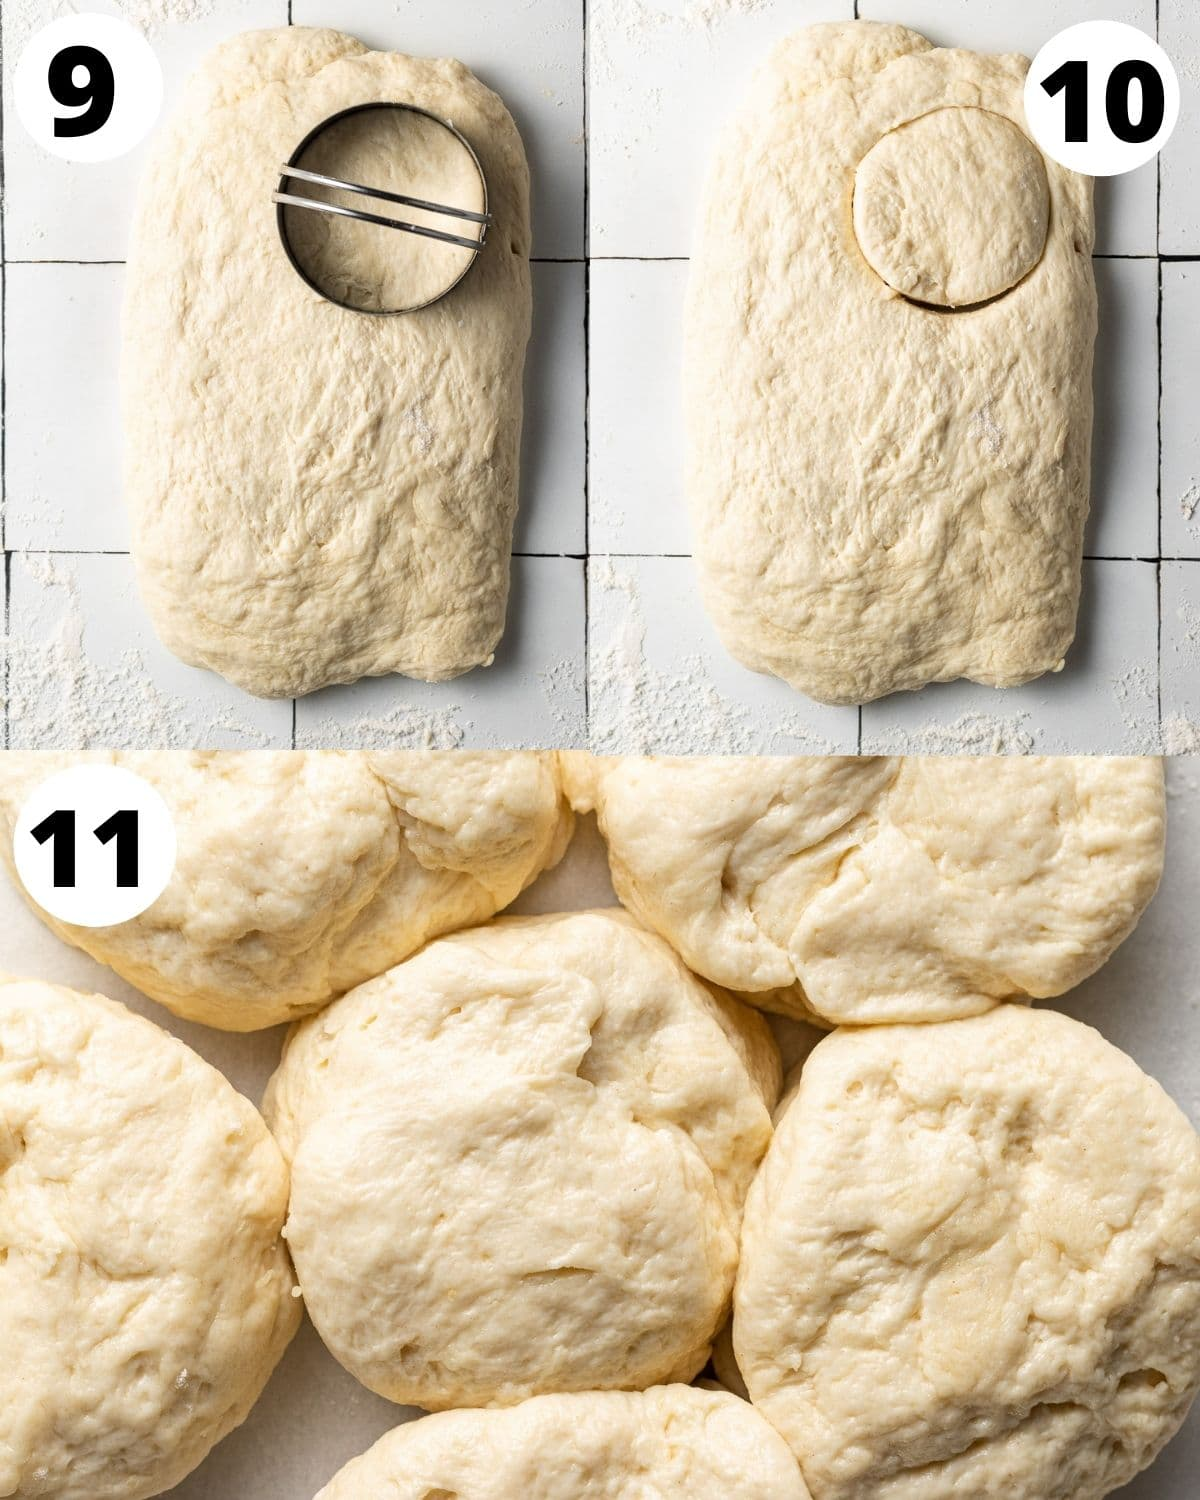 step by step process showing how to cut out dairy free biscuit dough